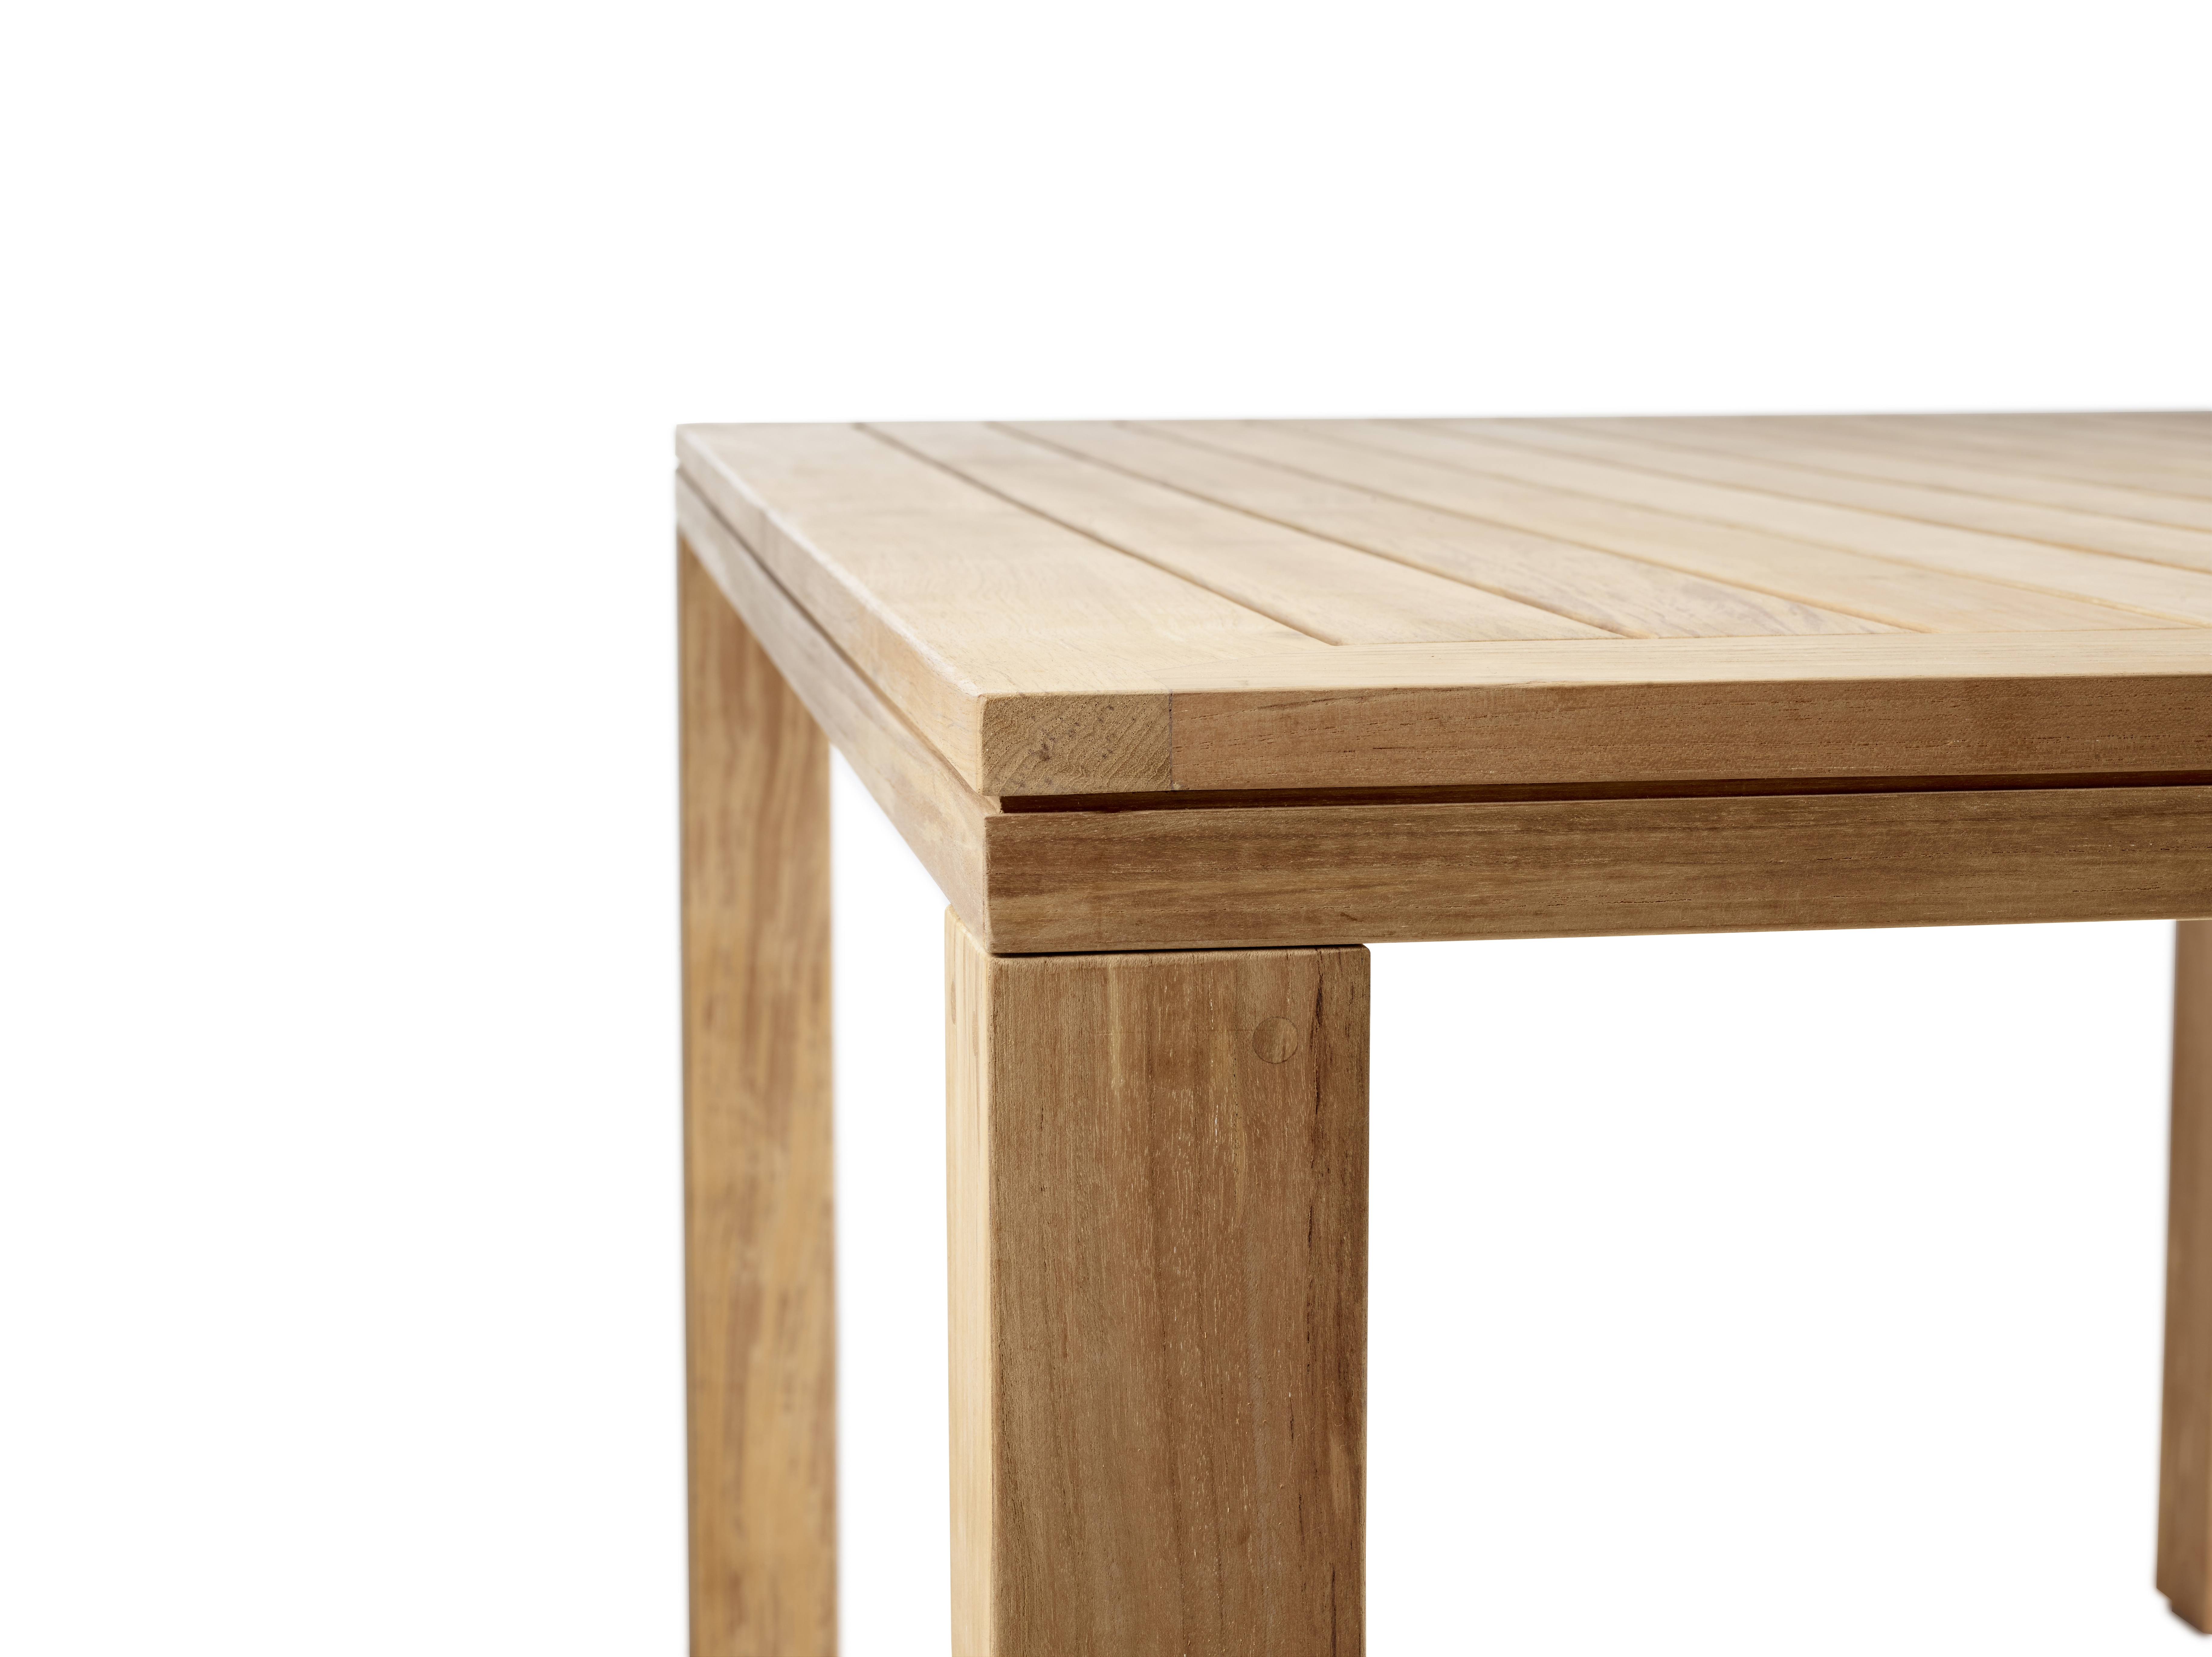 Stylepark Intended For Most Current Cube Dining Tables (View 21 of 25)